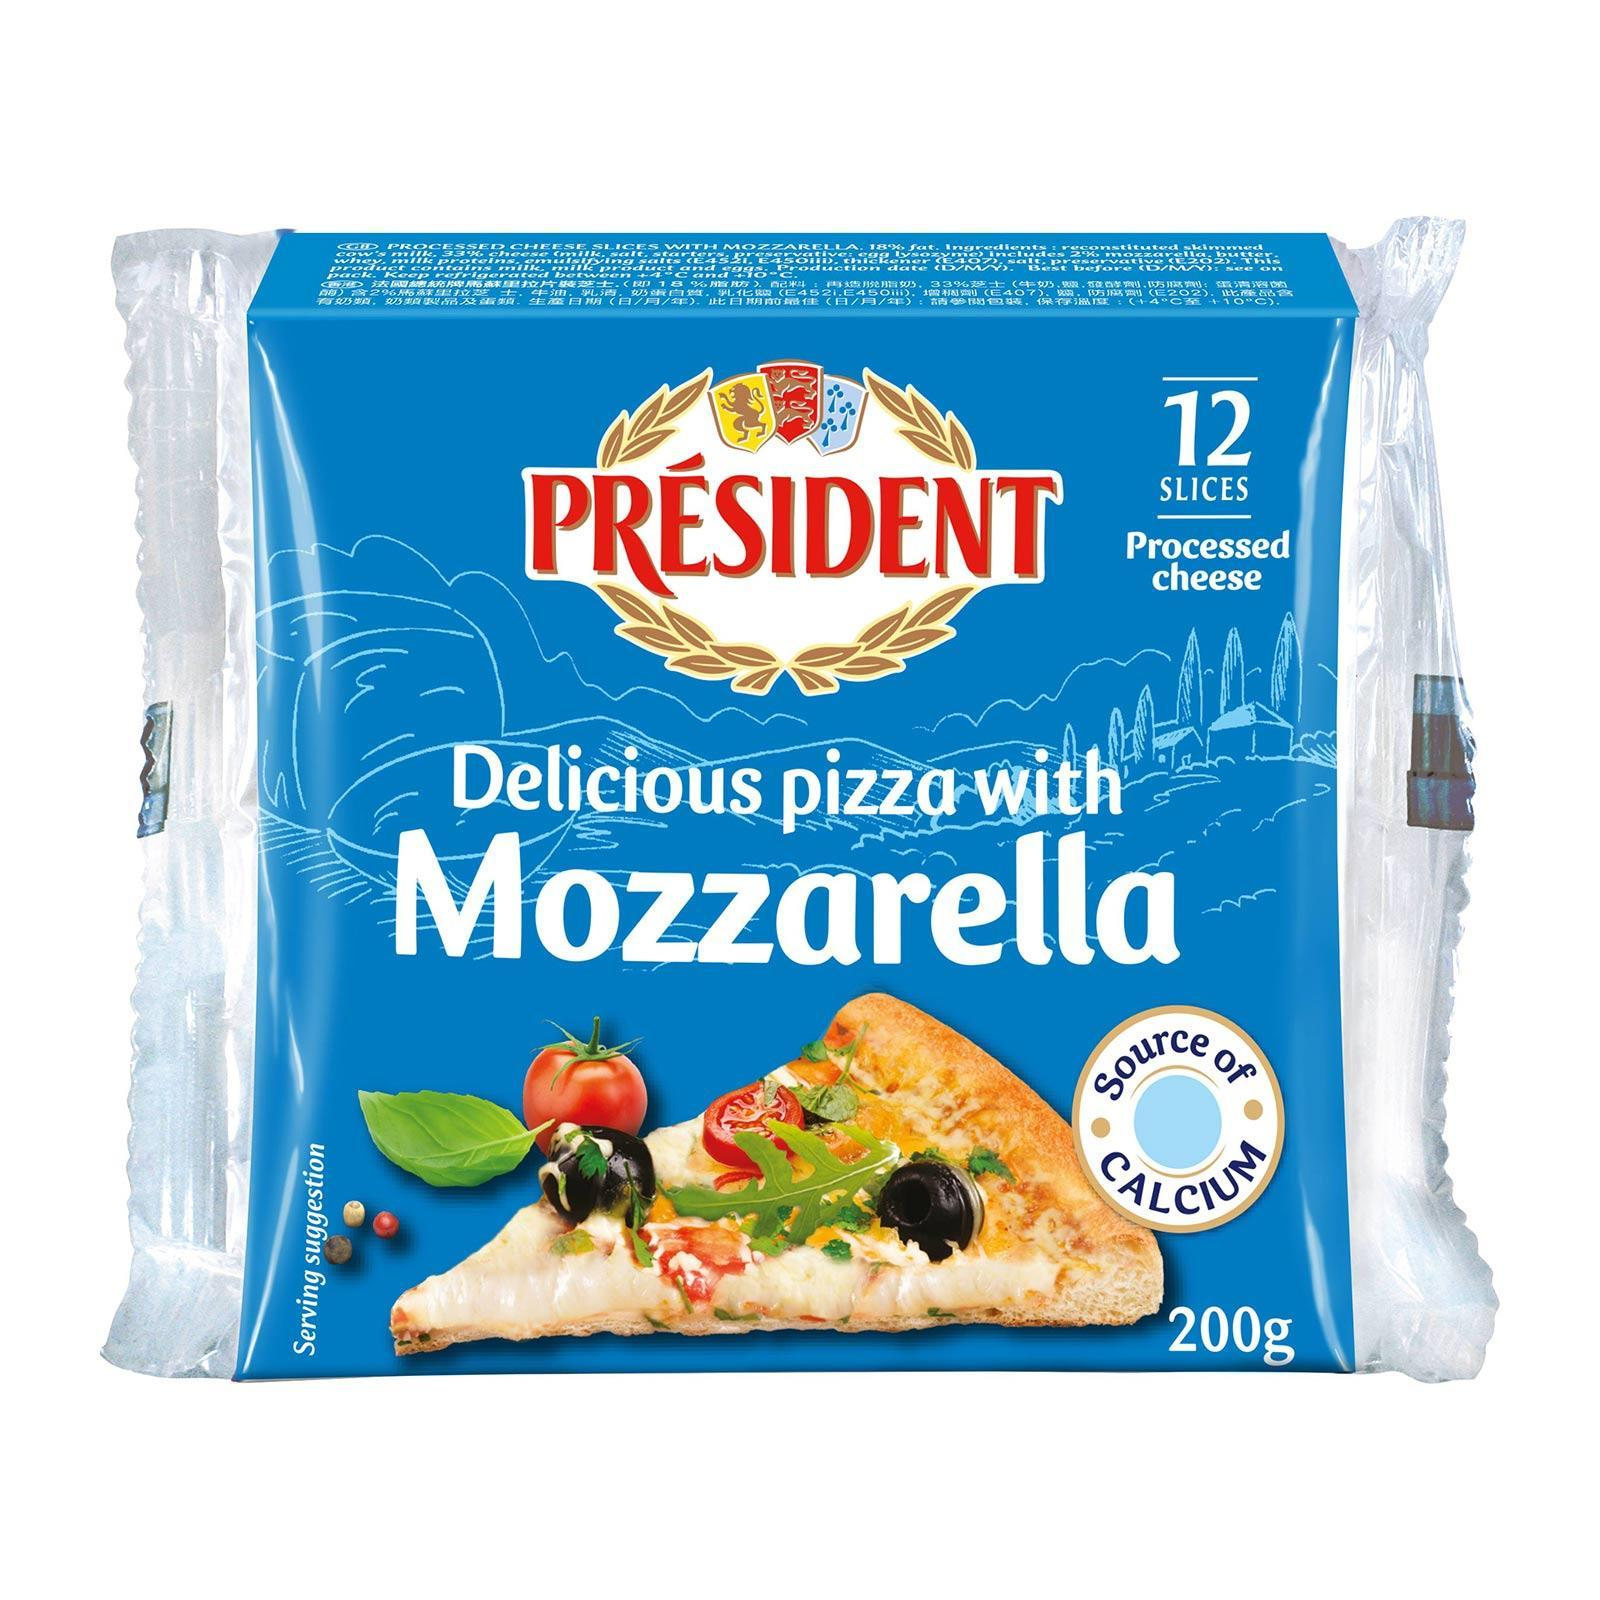 President Special Pizza Mozzarella Cheese Slices